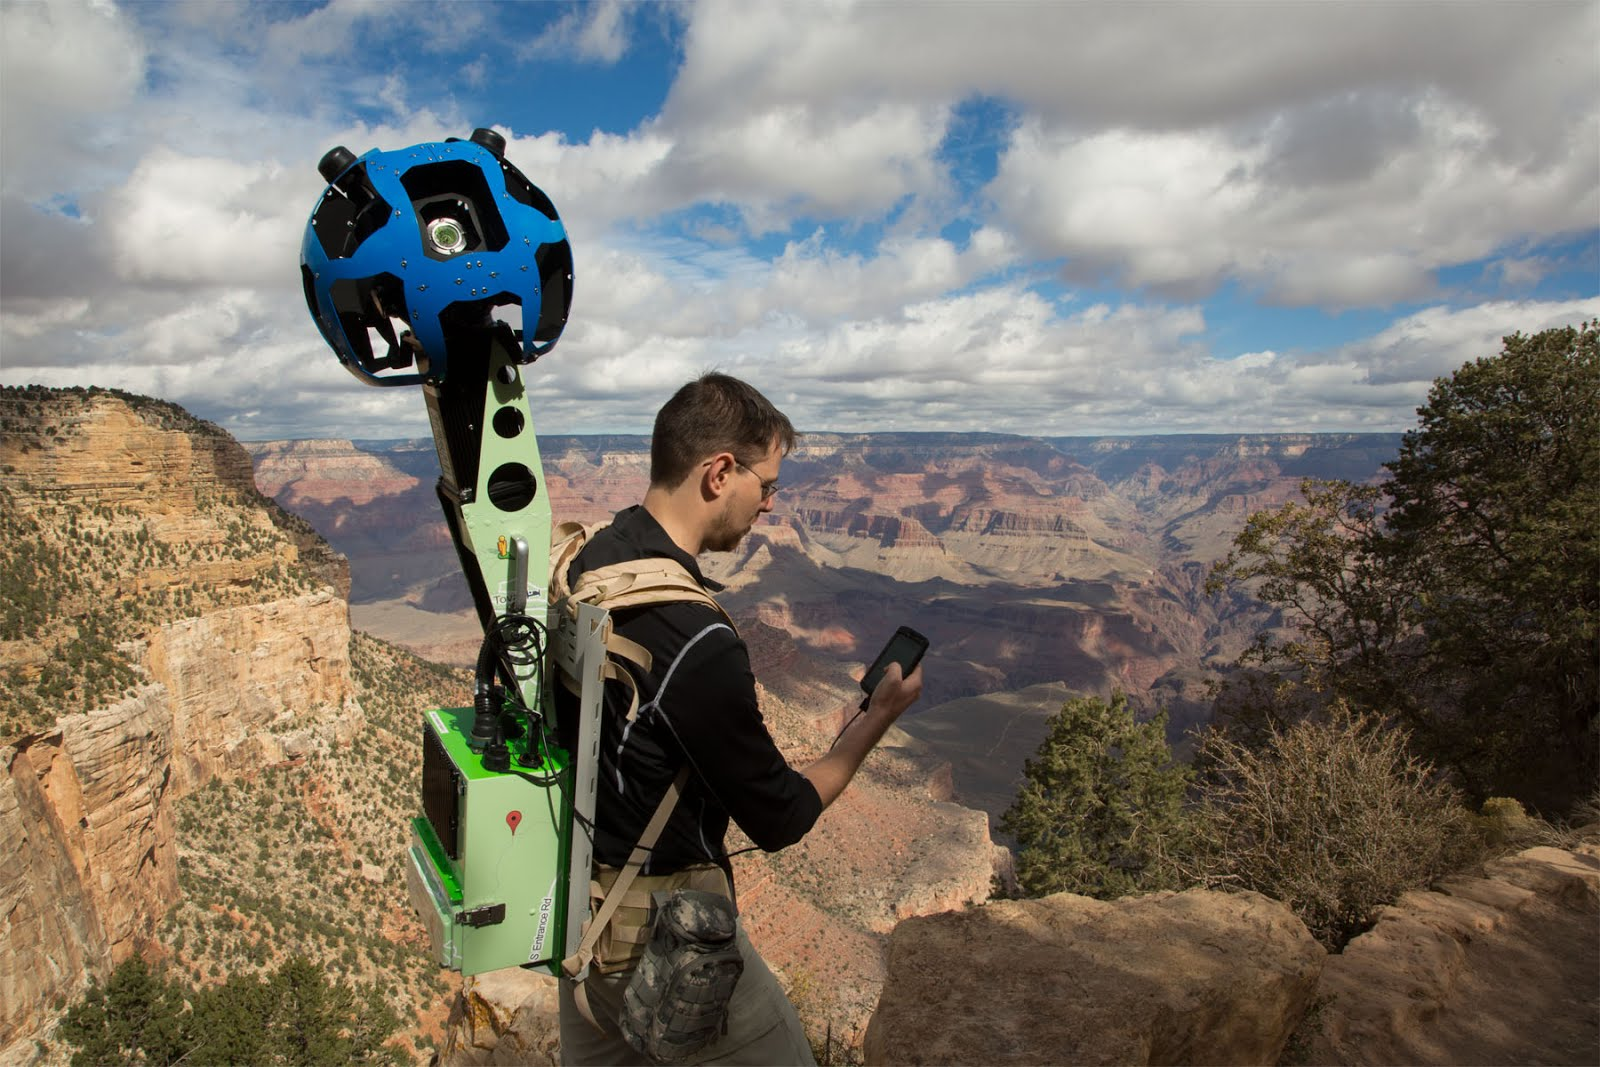 Grand Canyon trails beautifully captured with Trekker Googles